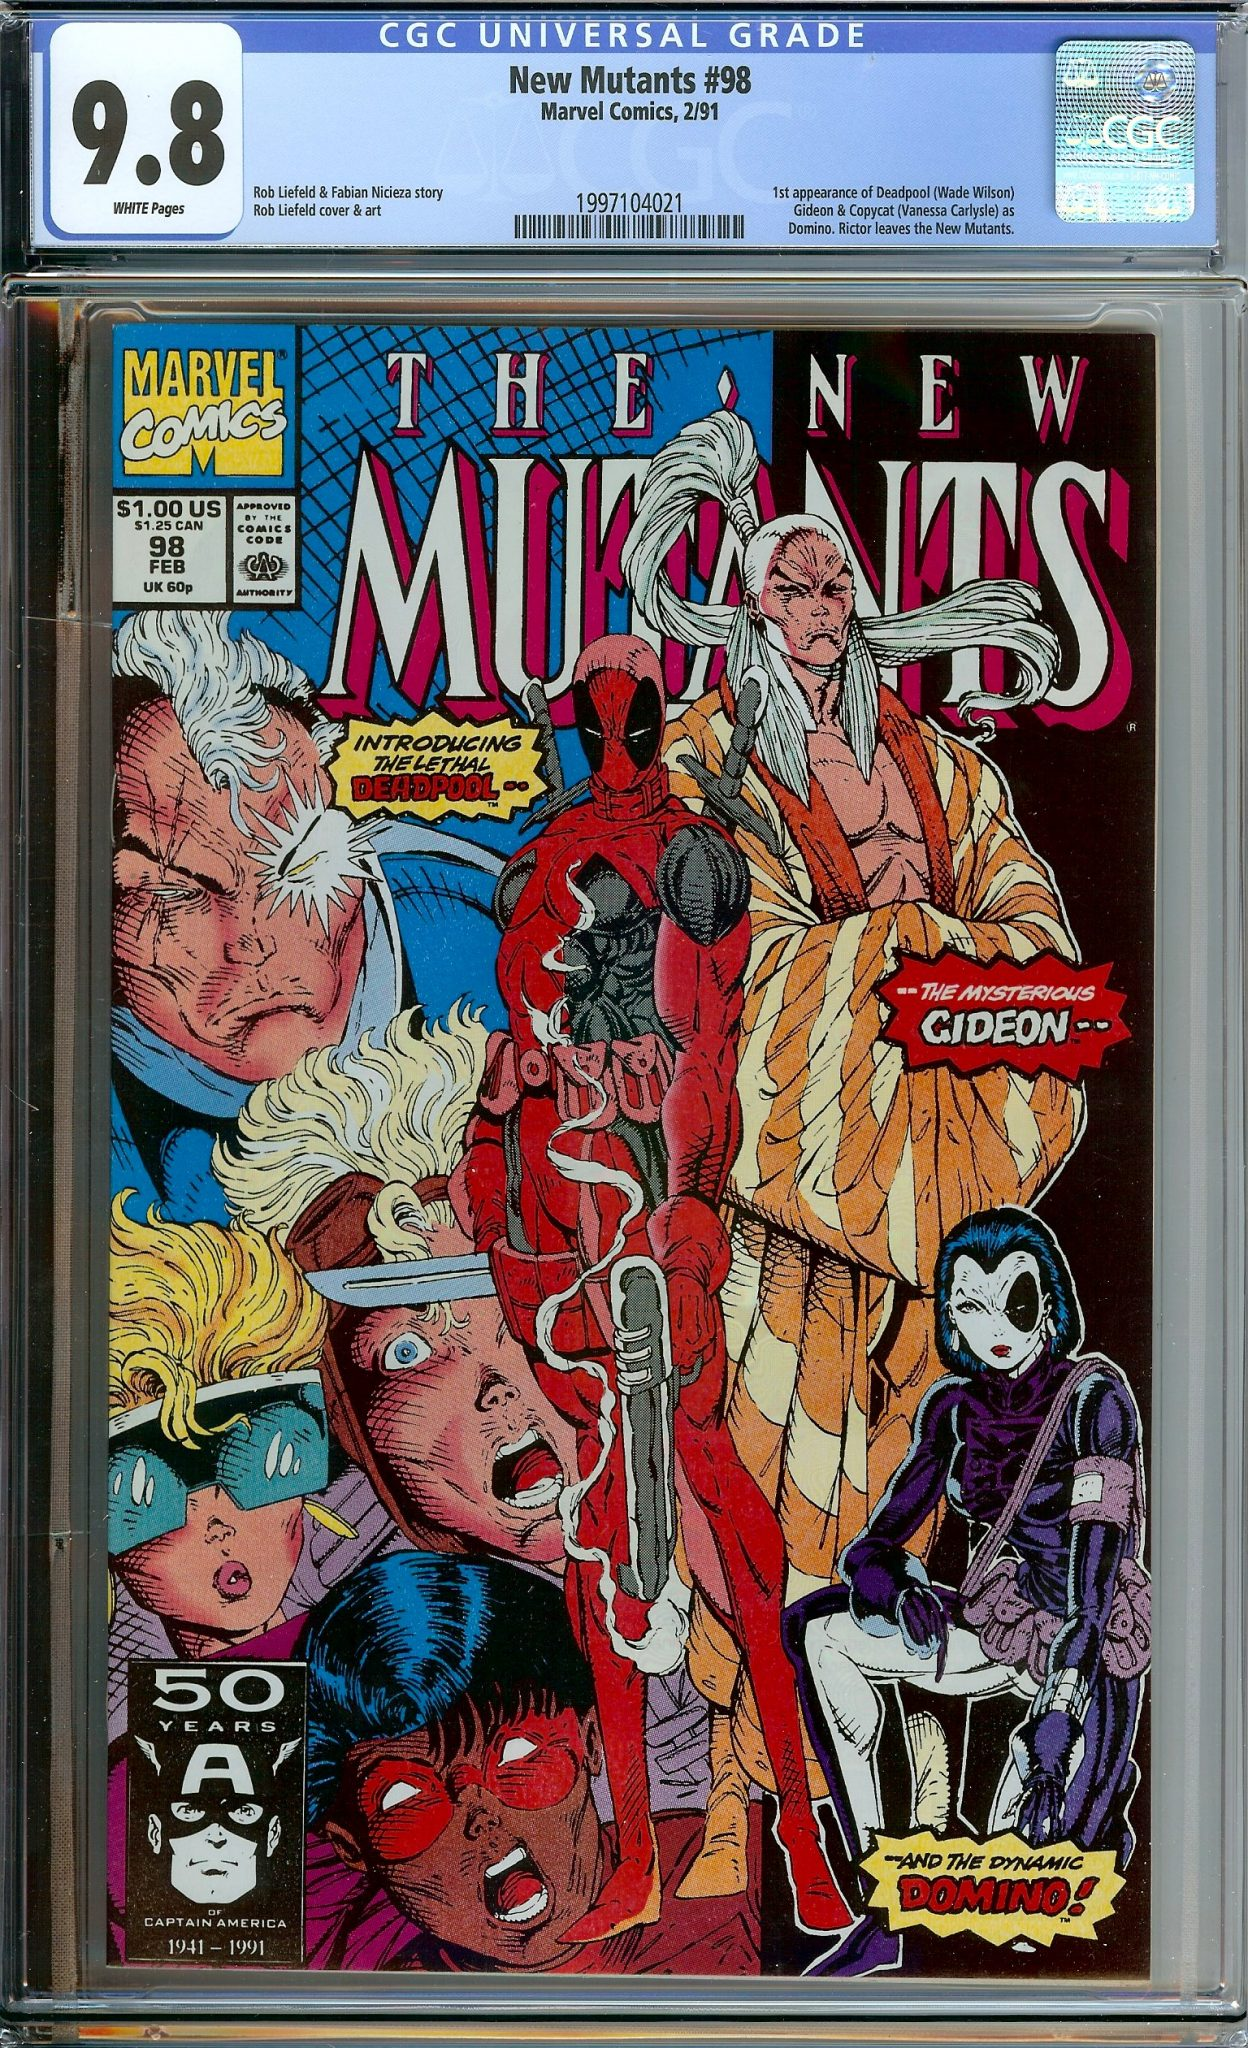 NEW MUTANTS #98 CGC 9 8 WHITE PAGES